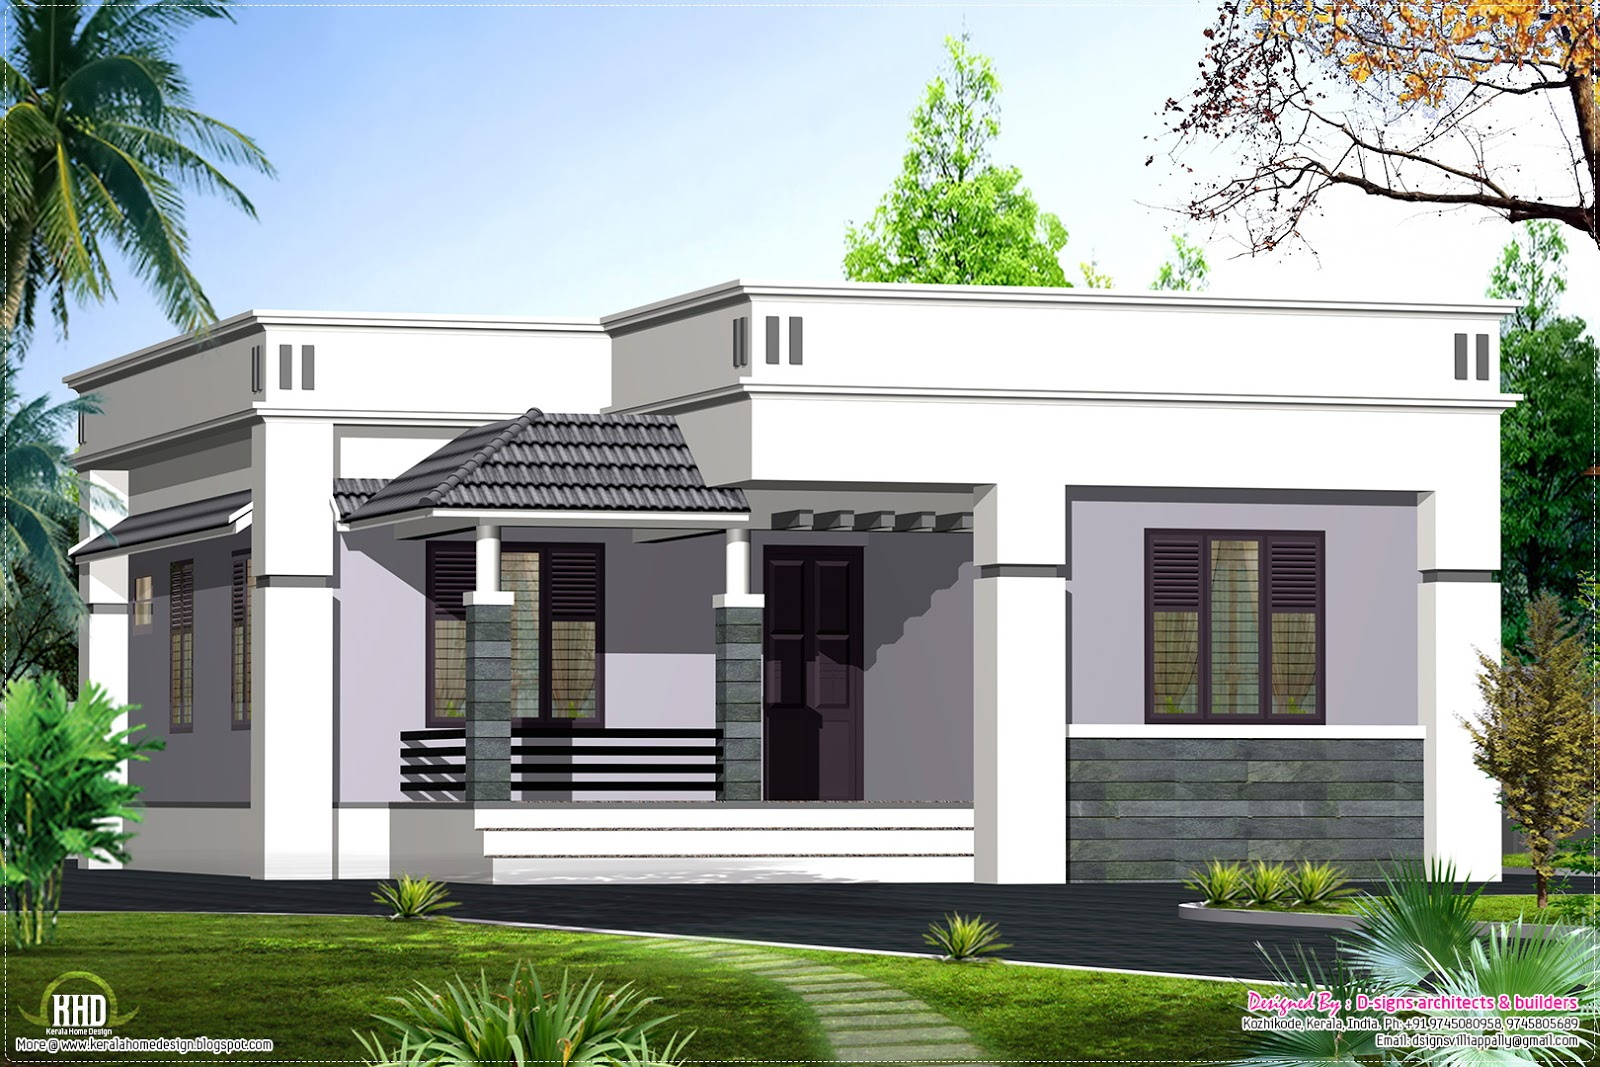 Sensational The Best Simple Design Home Home Top Amazing Simple House Designs Largest Home Design Picture Inspirations Pitcheantrous